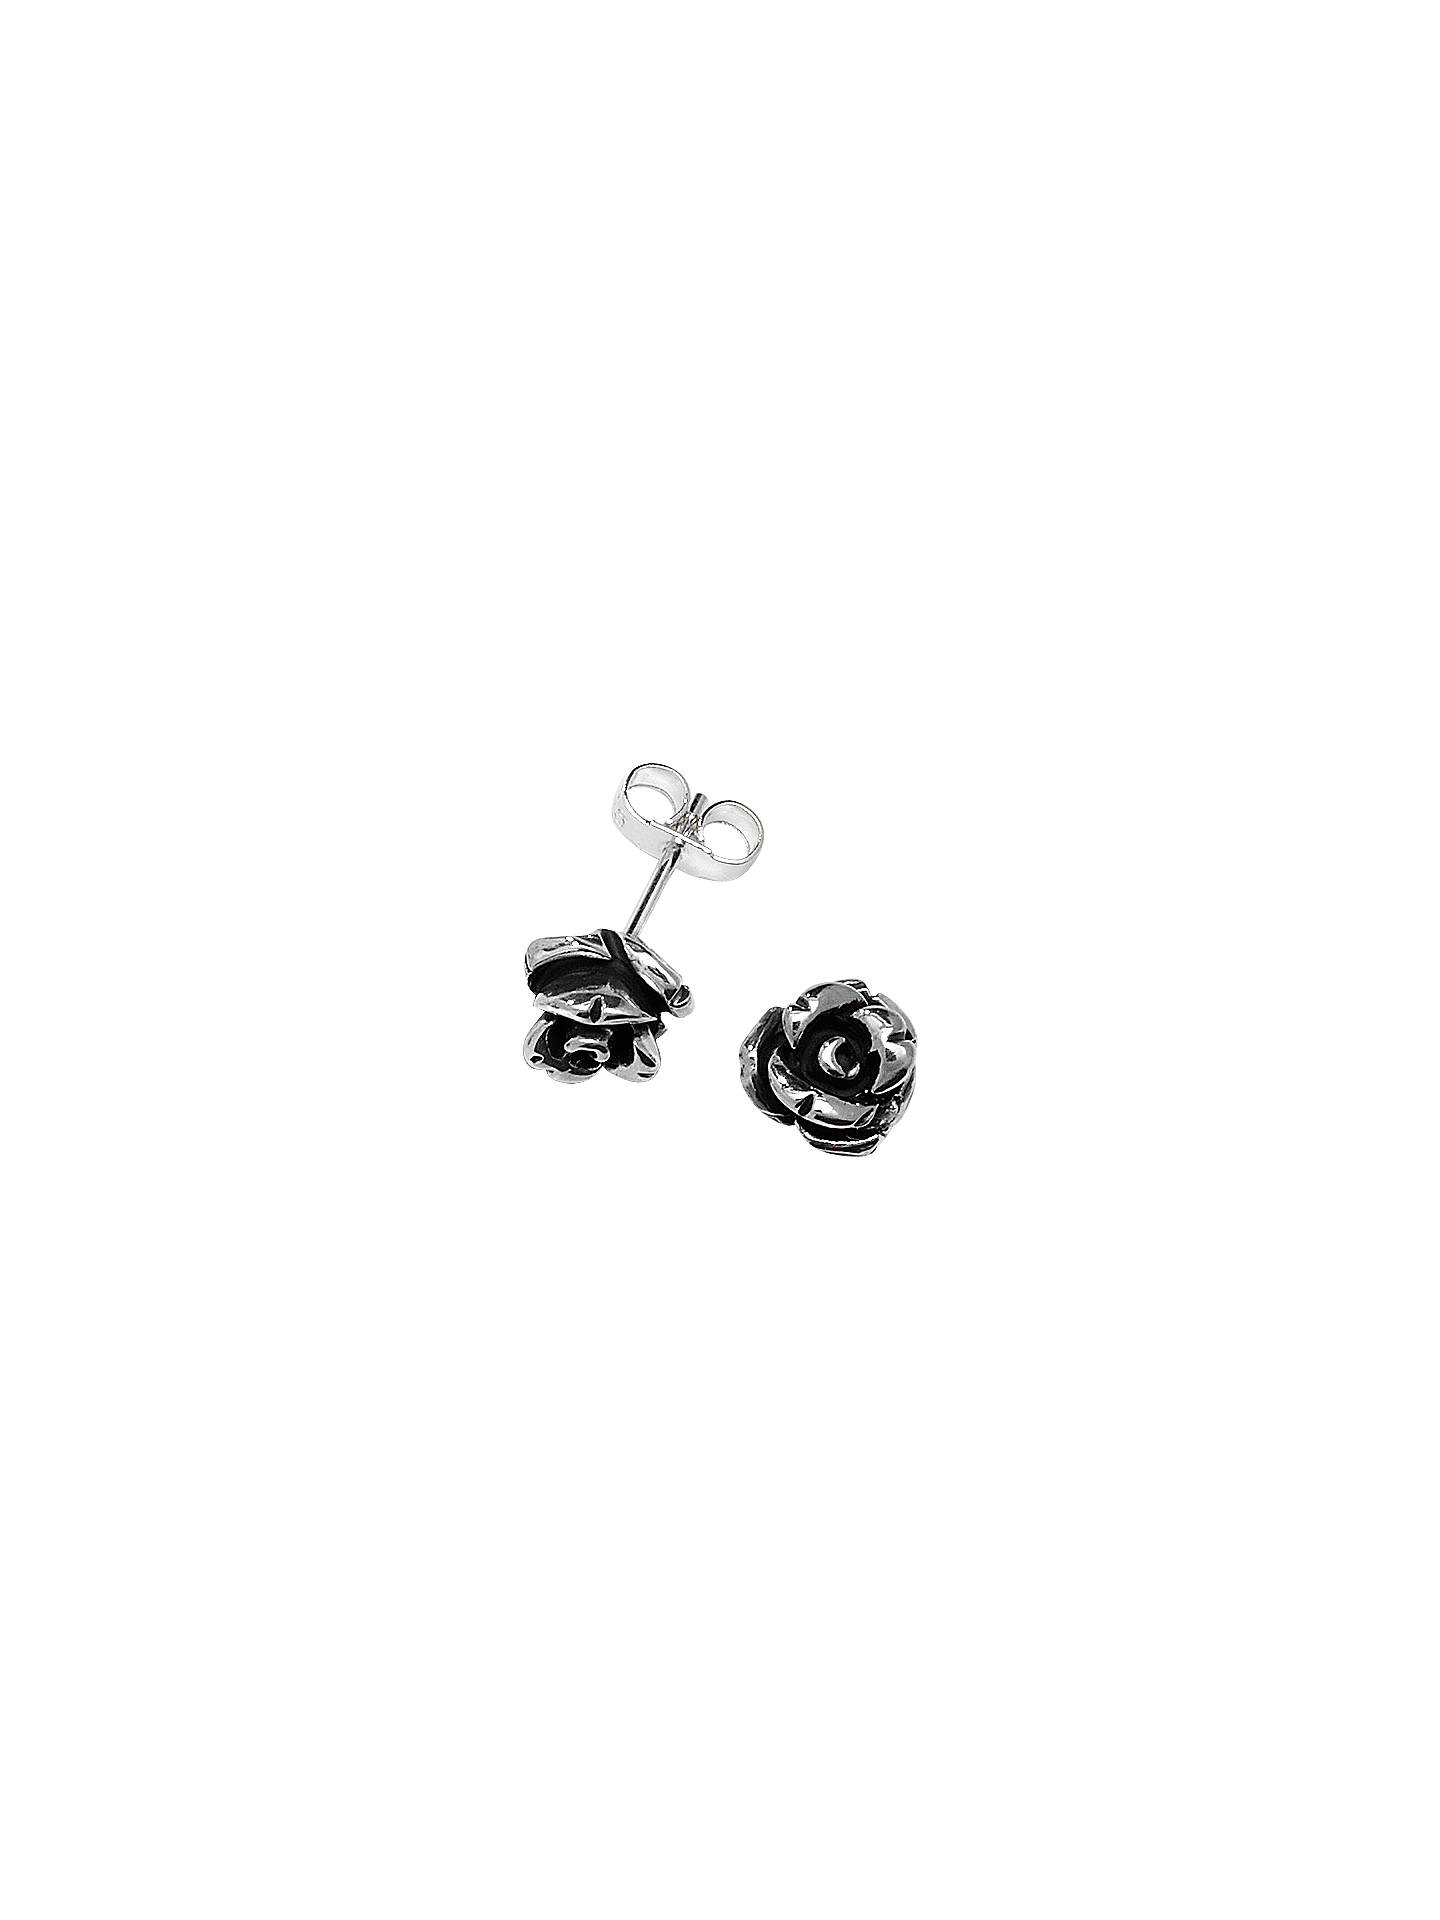 a6b96d490 Buy Linda Macdonald Oxidised Silver Rose Stud Earrings Online at  johnlewis.com